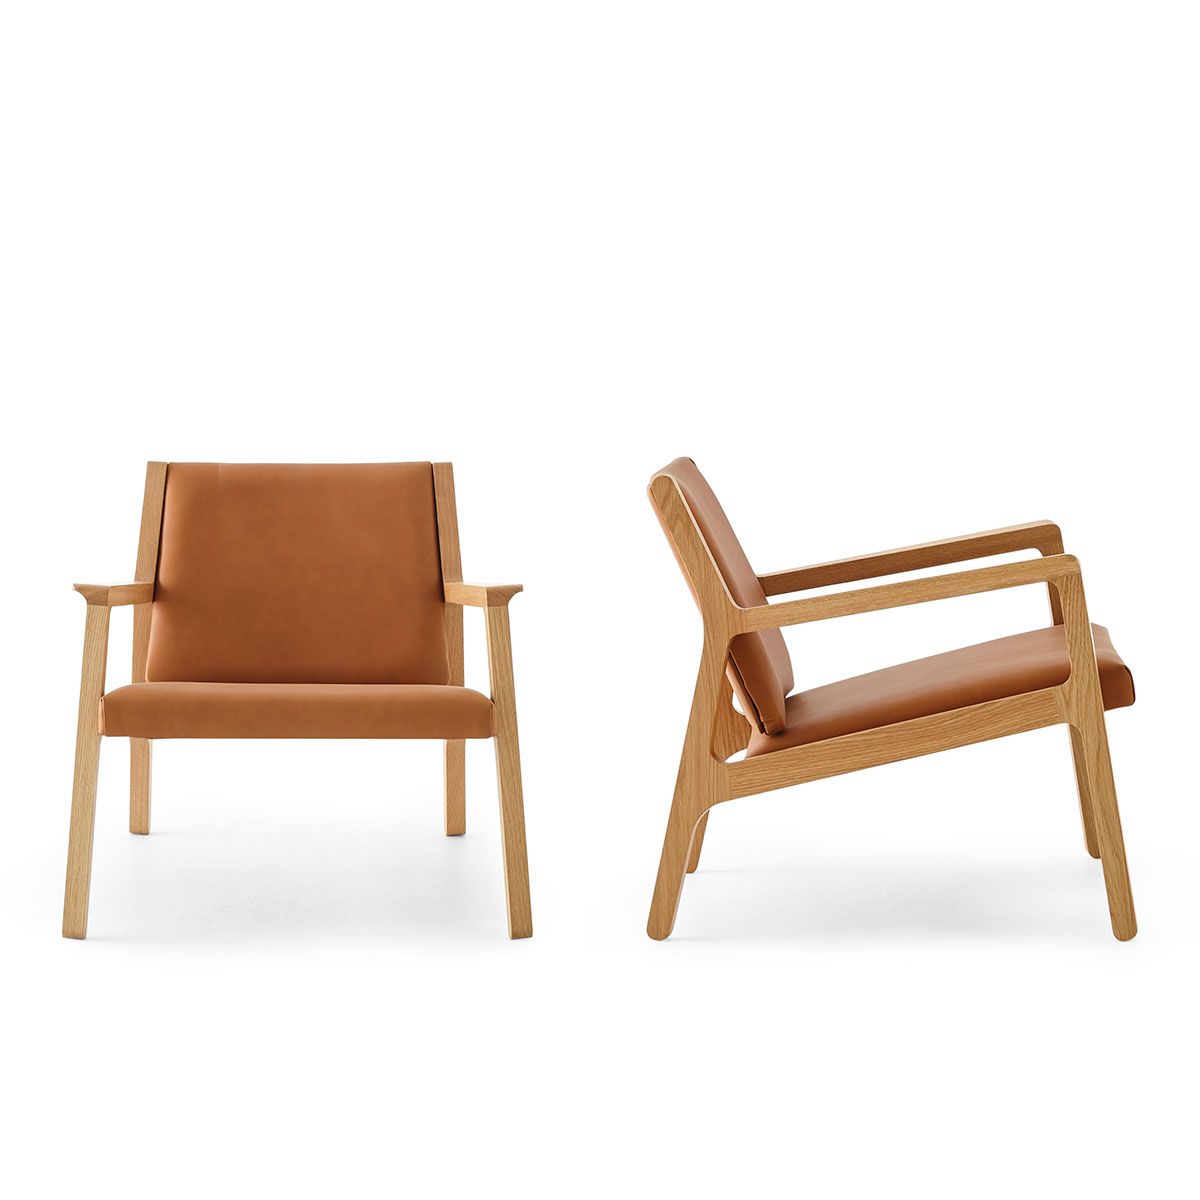 Ari armchair  by  Studio Pip .